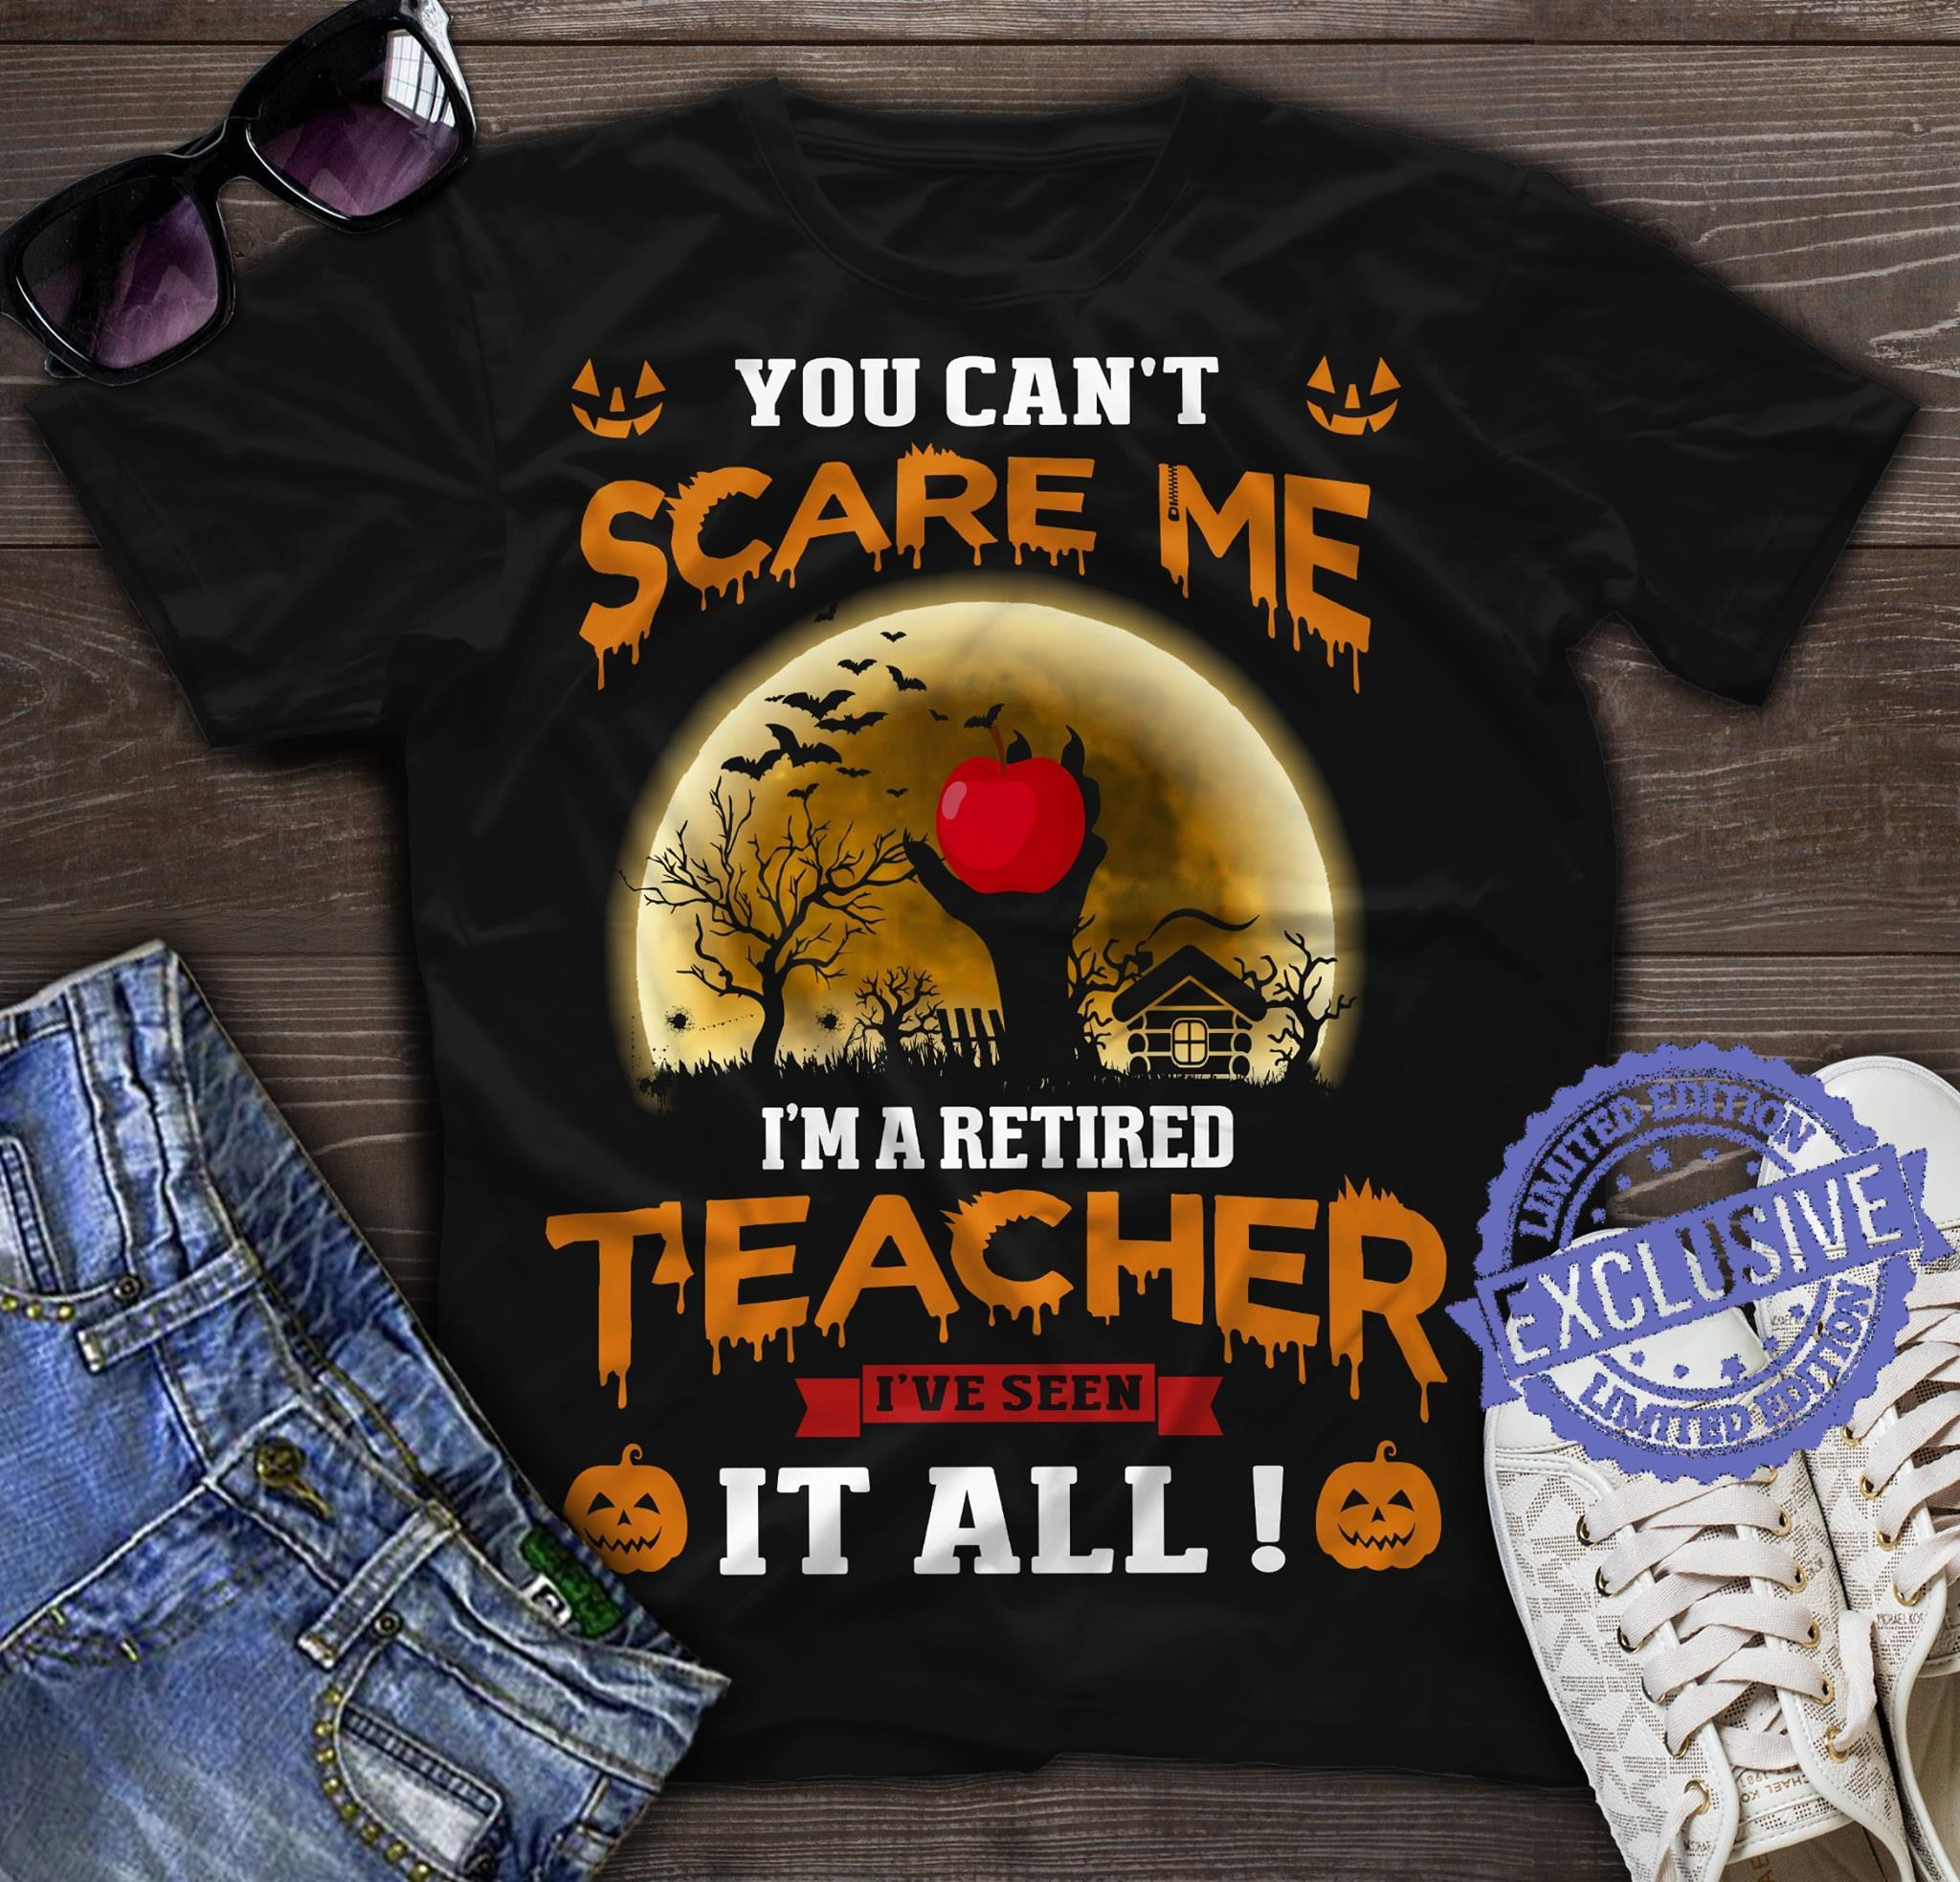 You can't scare me i'm retired teacher i've seen it all shirt